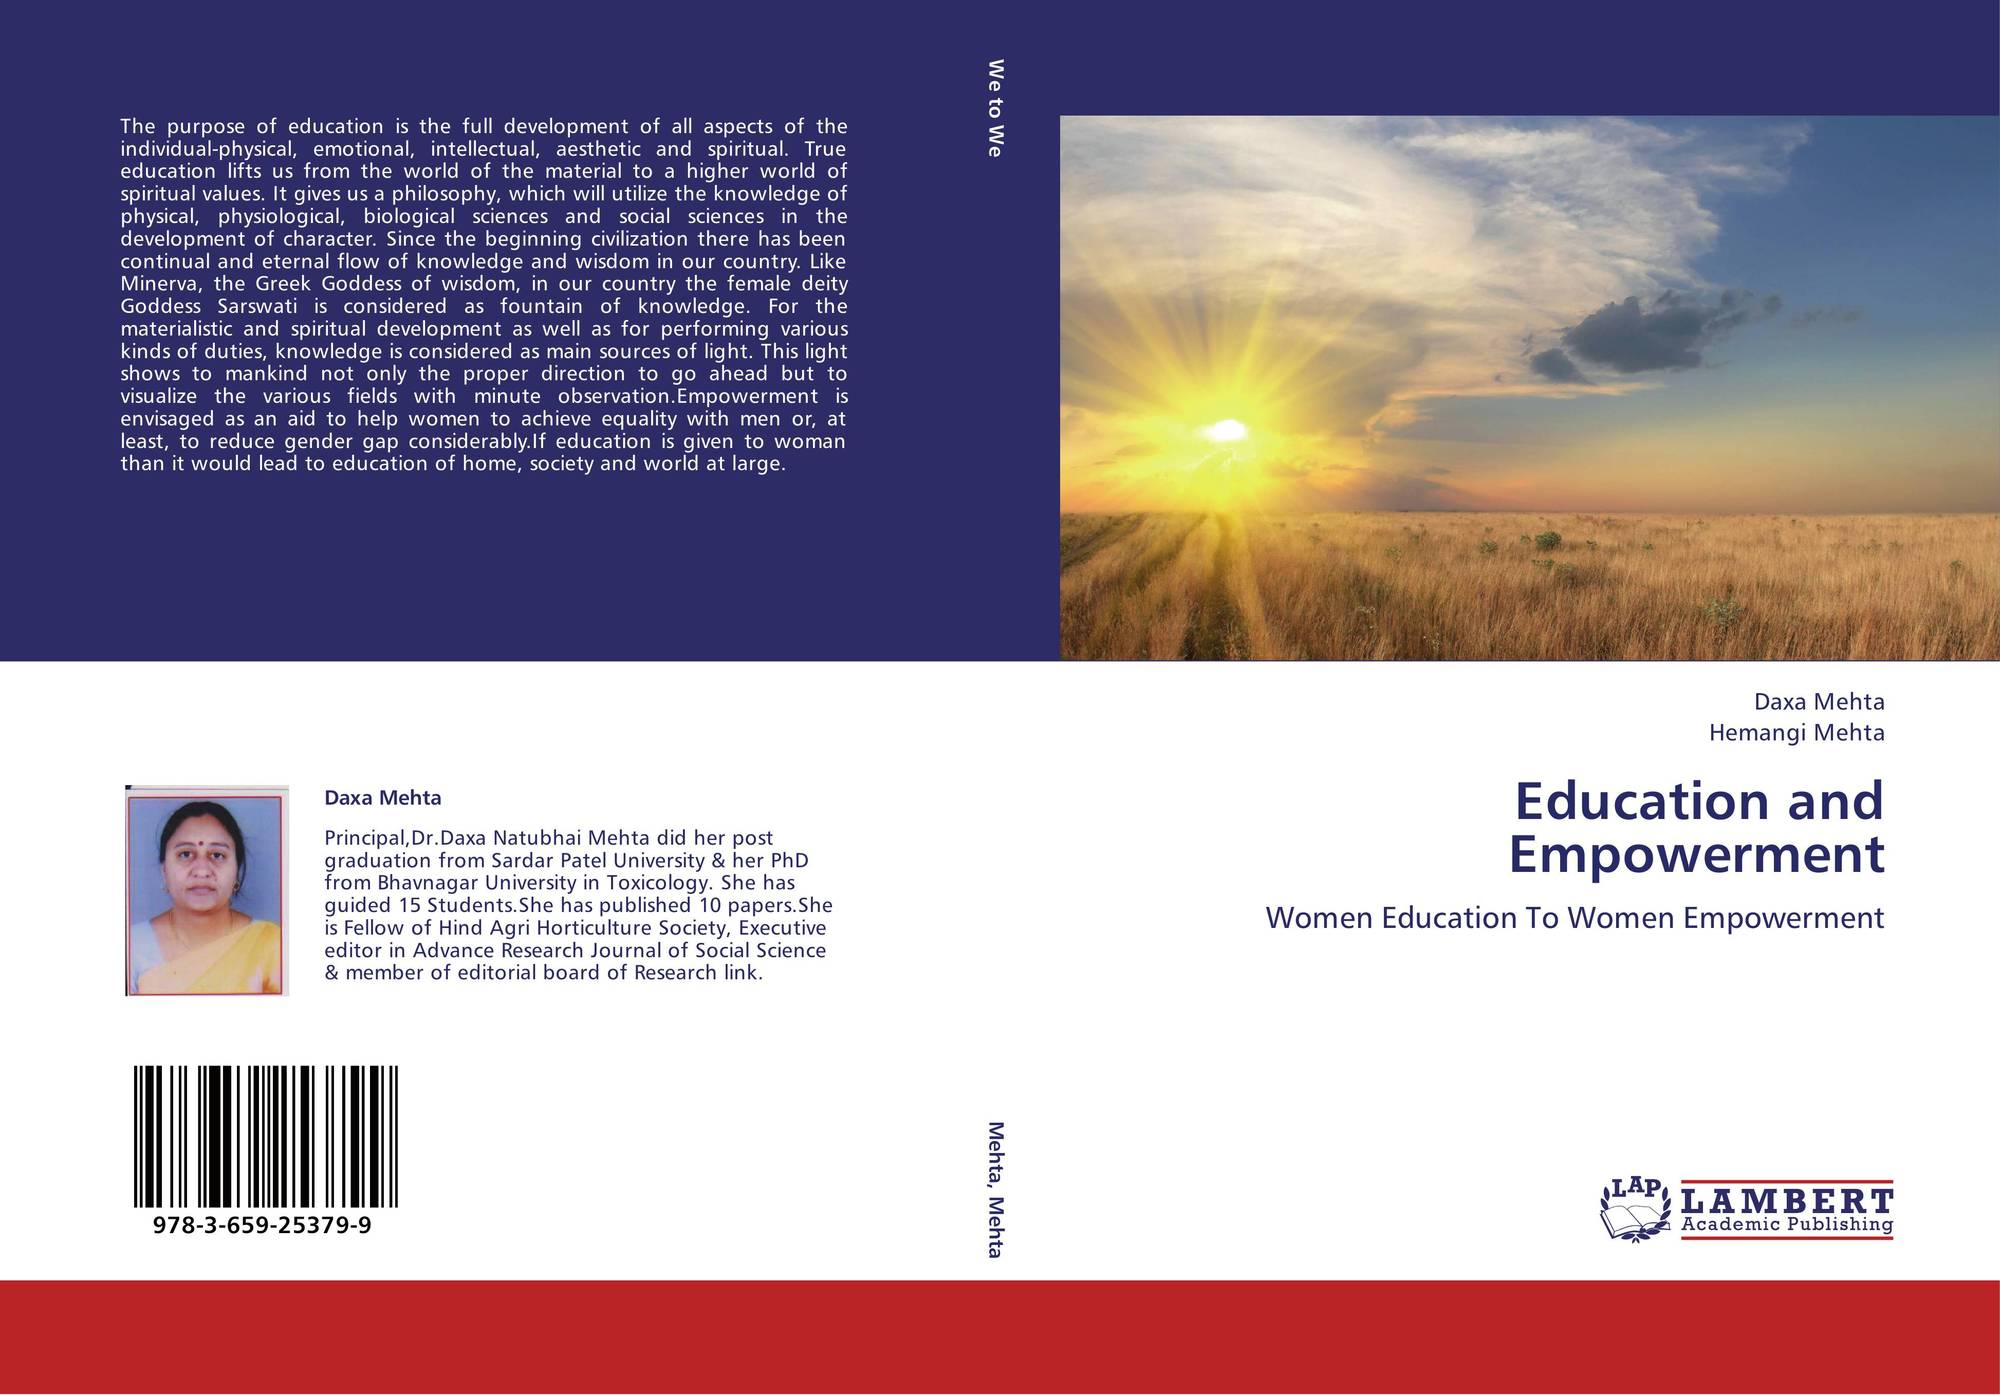 the purpose of education empowering individuals Its main purpose is three-fold: a higher education institution for freedom and democracy, for knowledge and innovation, and for humankind and their environment that is, an institution as a place where individuals are prepared as democratic citizens for a democratic society.